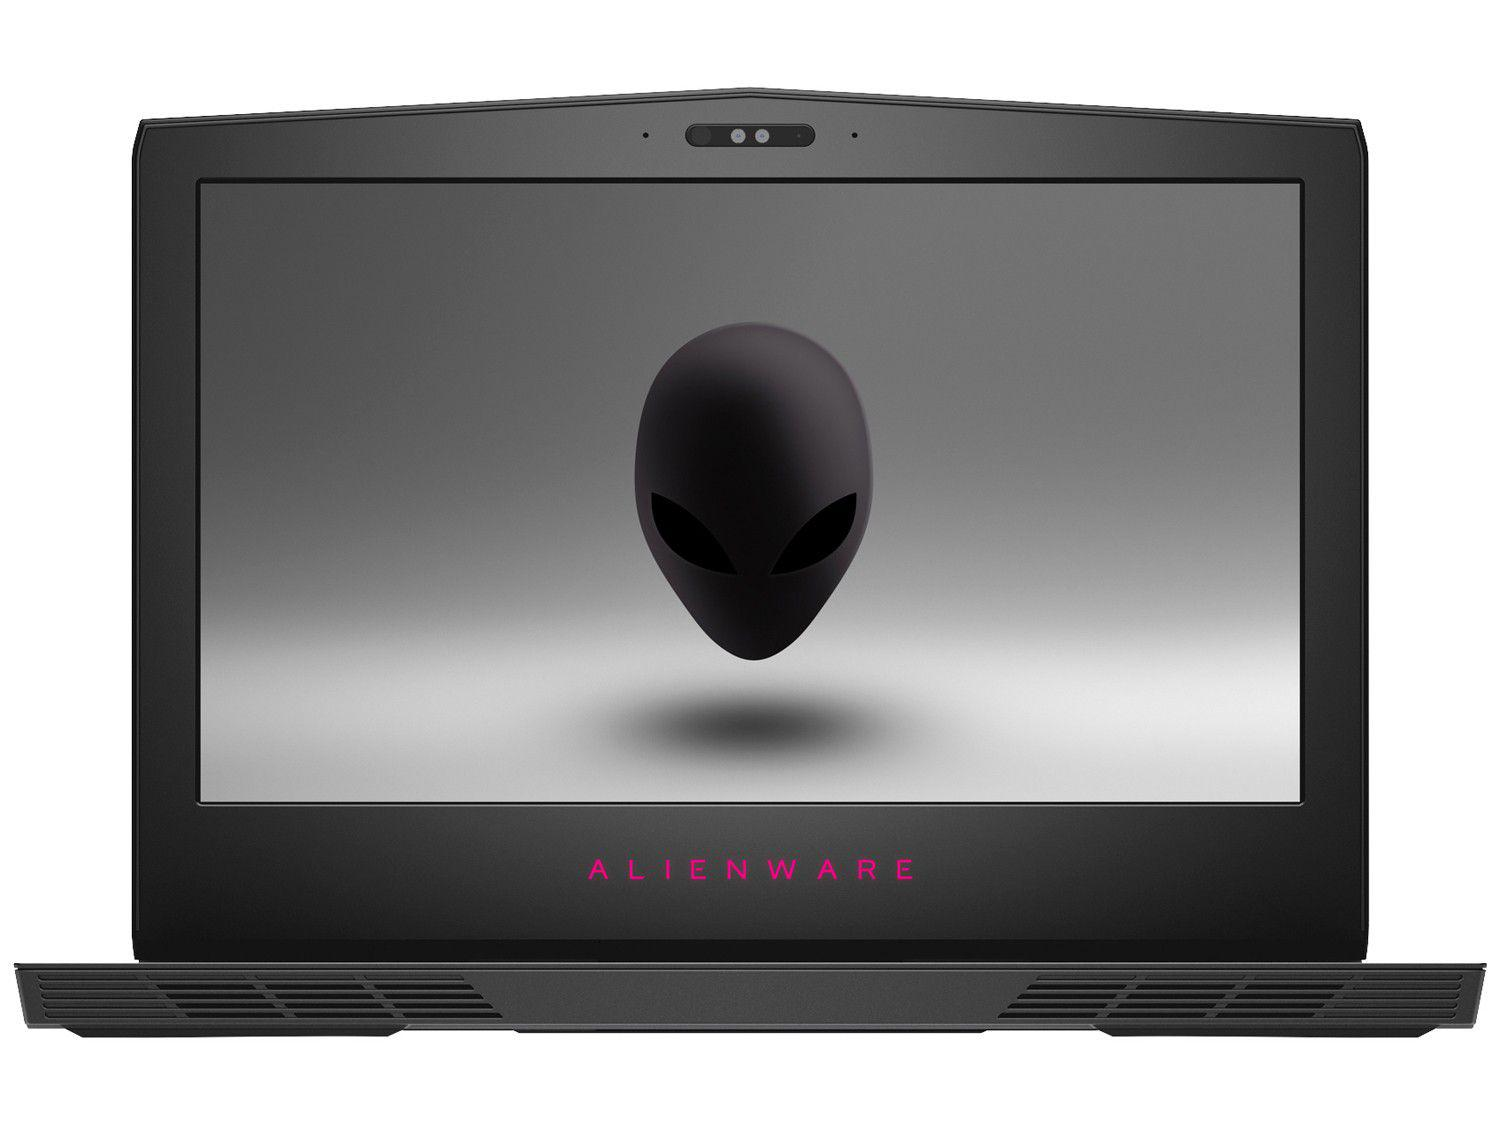 Dell Alienware 15 R2 Killer Ethernet E2400 Driver